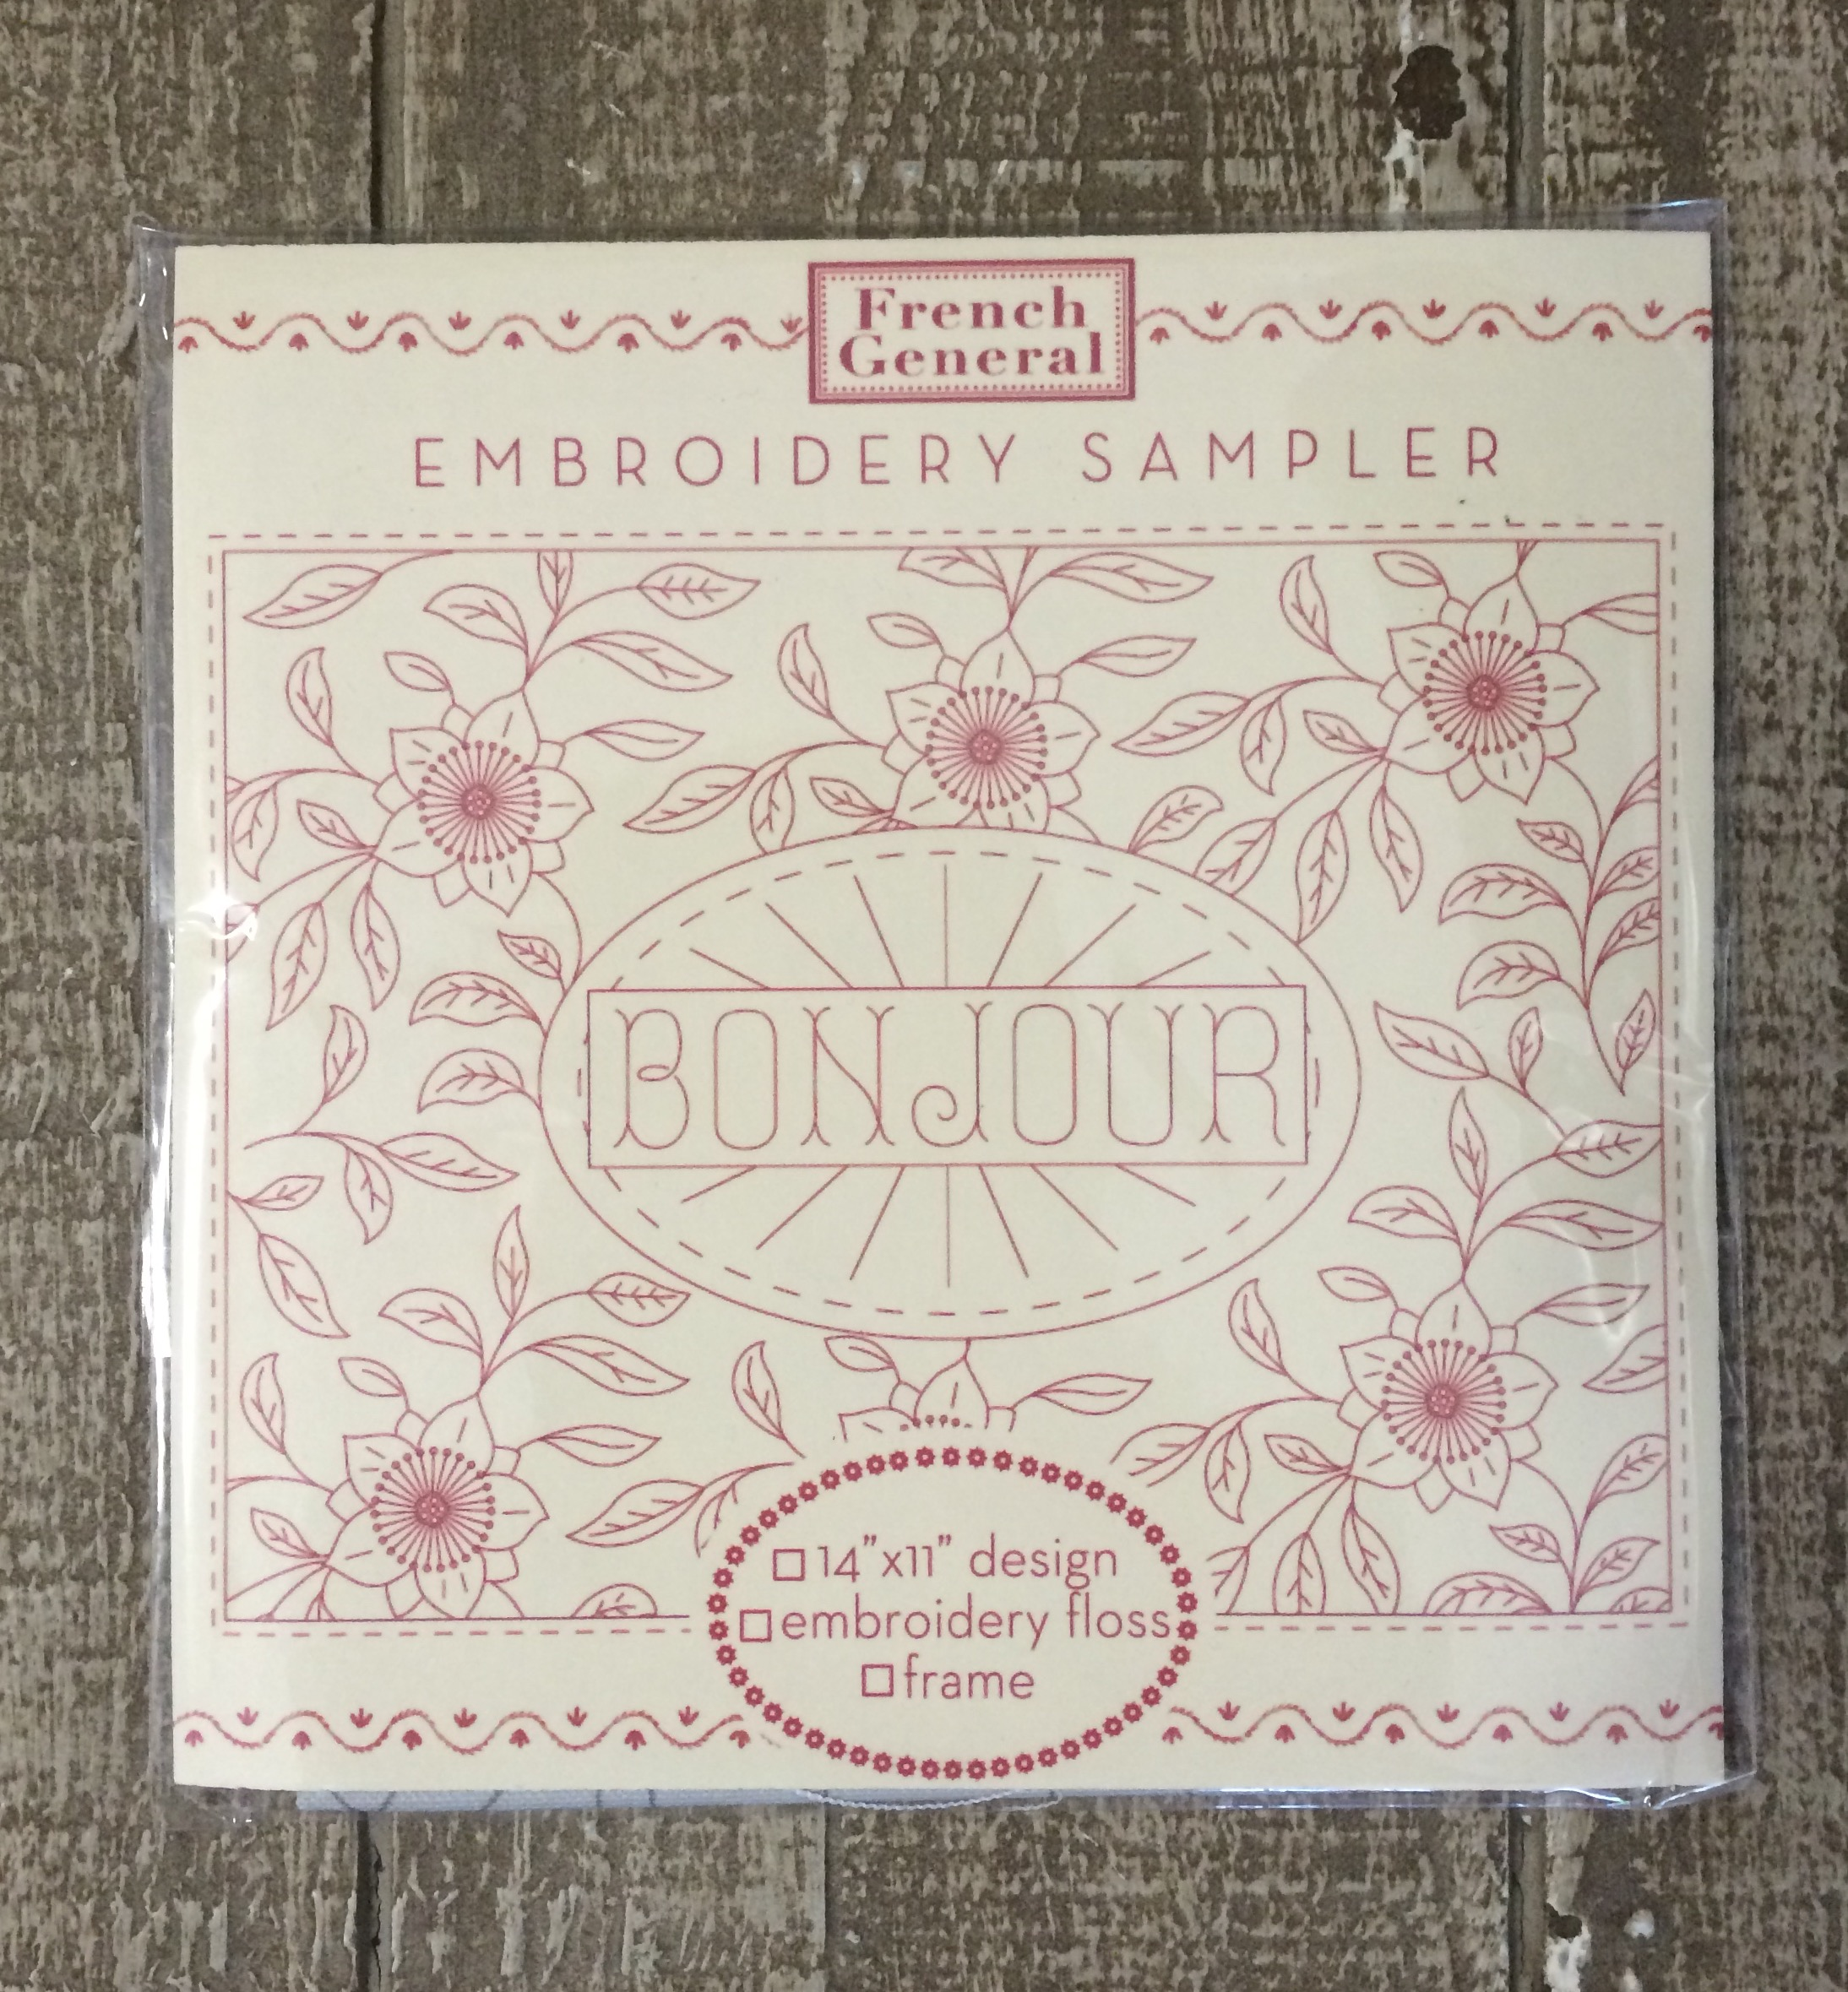 The sampler contains the printed cloth only.